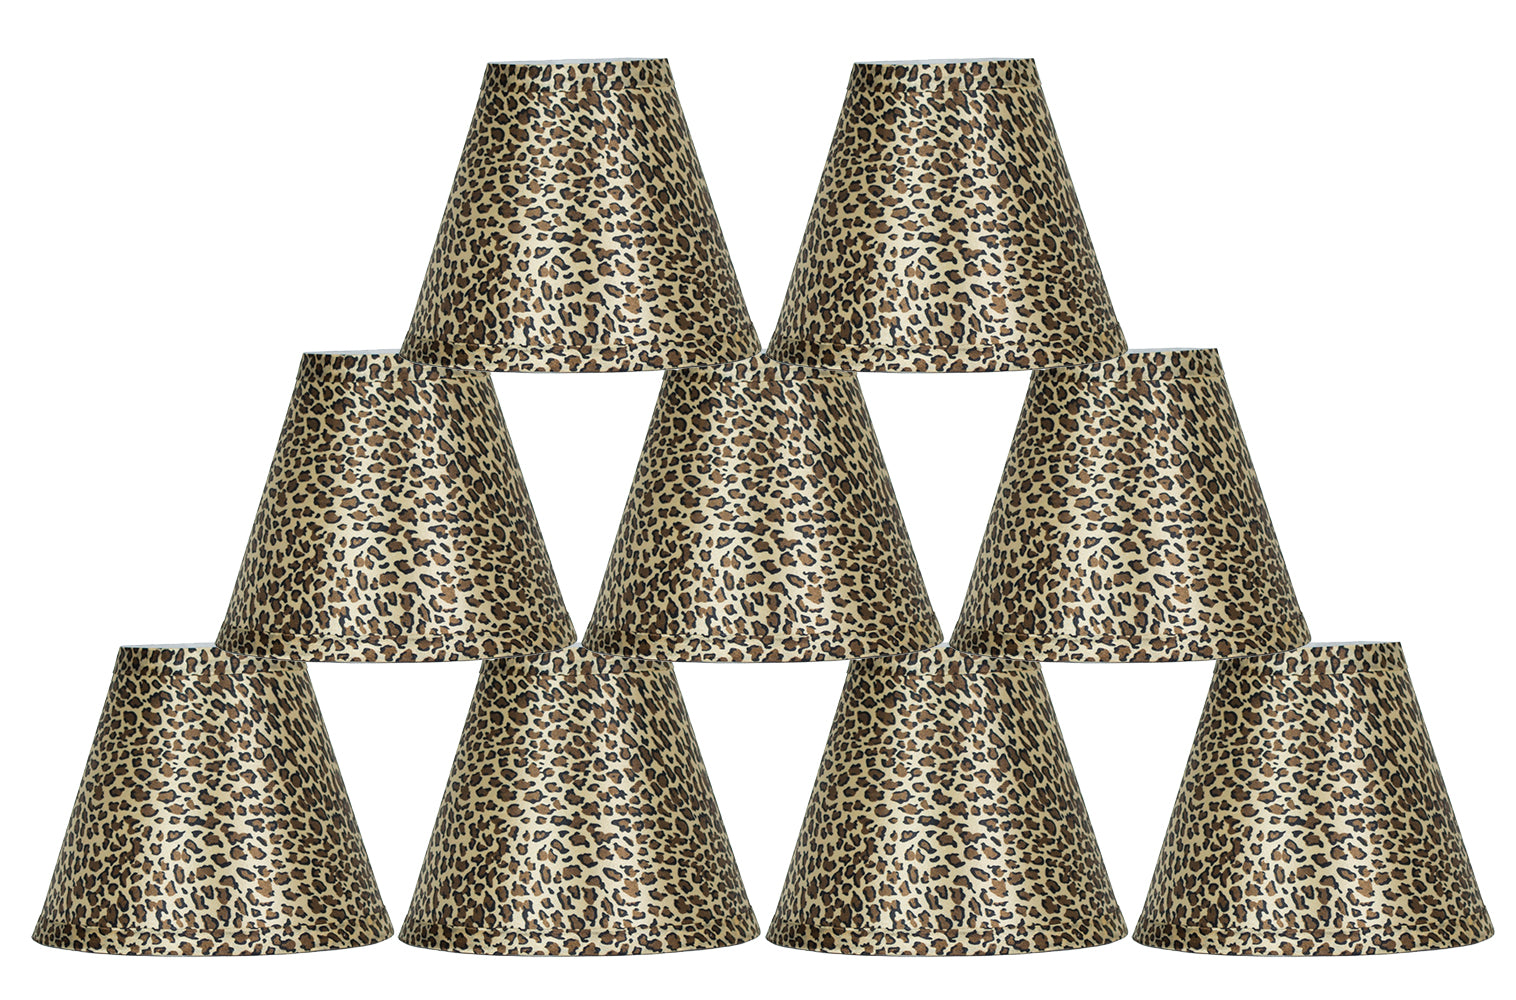 Animal Print 6-inch Chandelier Lamp Shade - 3 Print Options